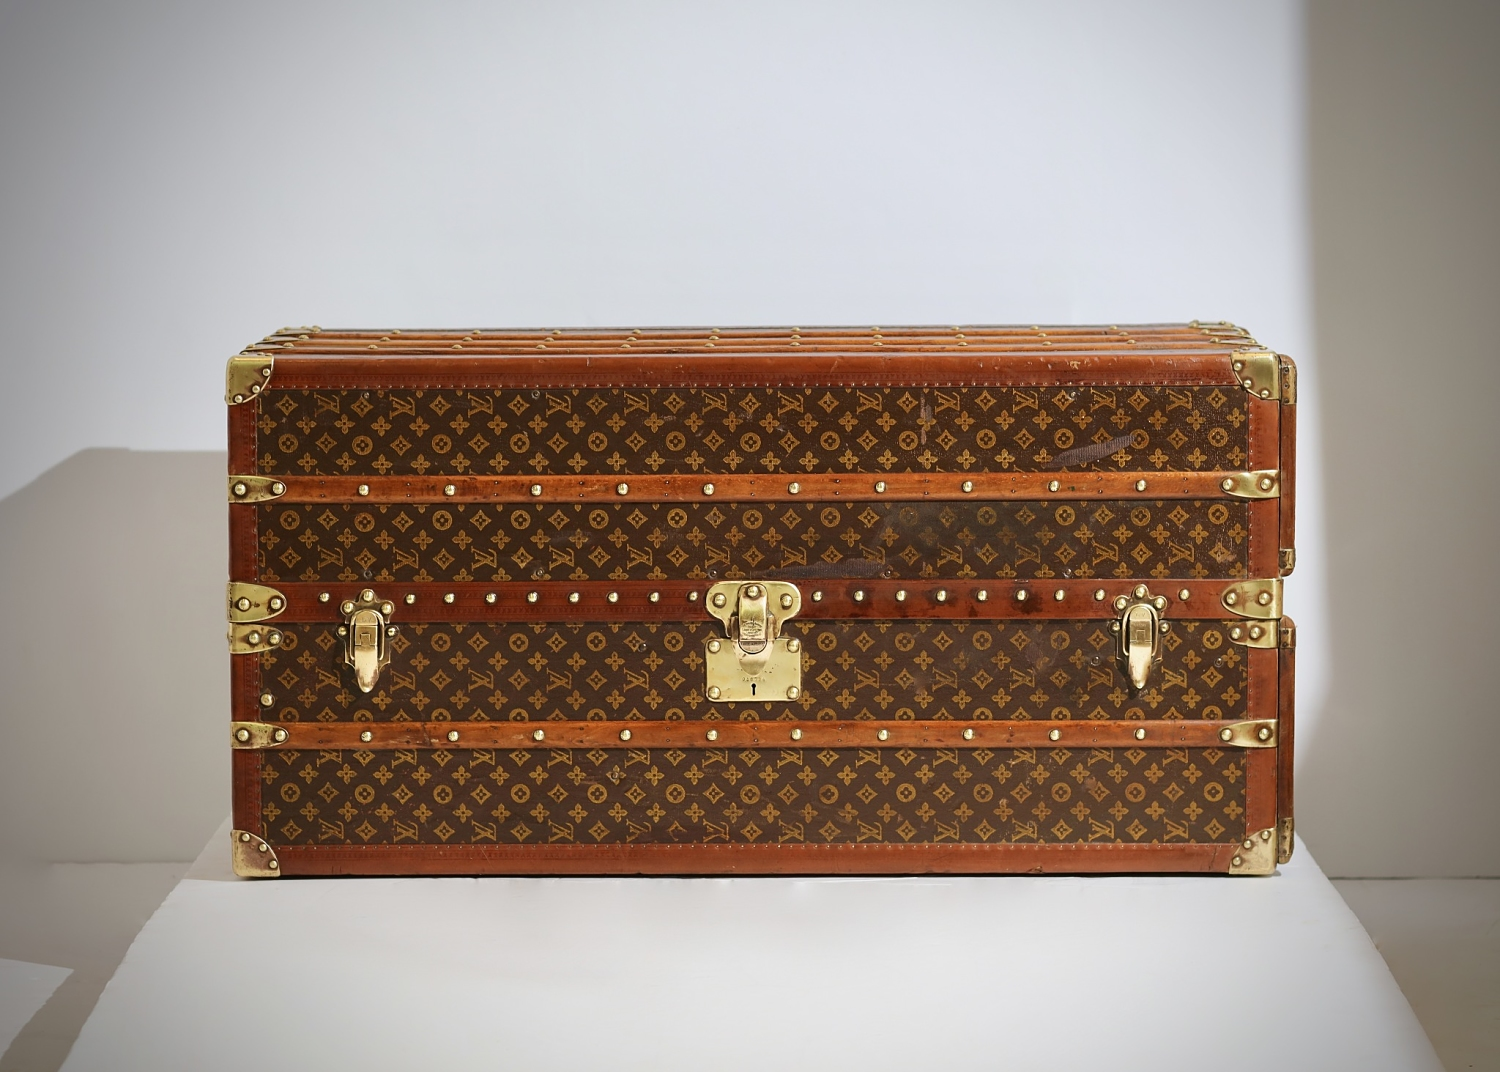 aveled-trunk-louis-vuitton-thumbnail-product-5675-1